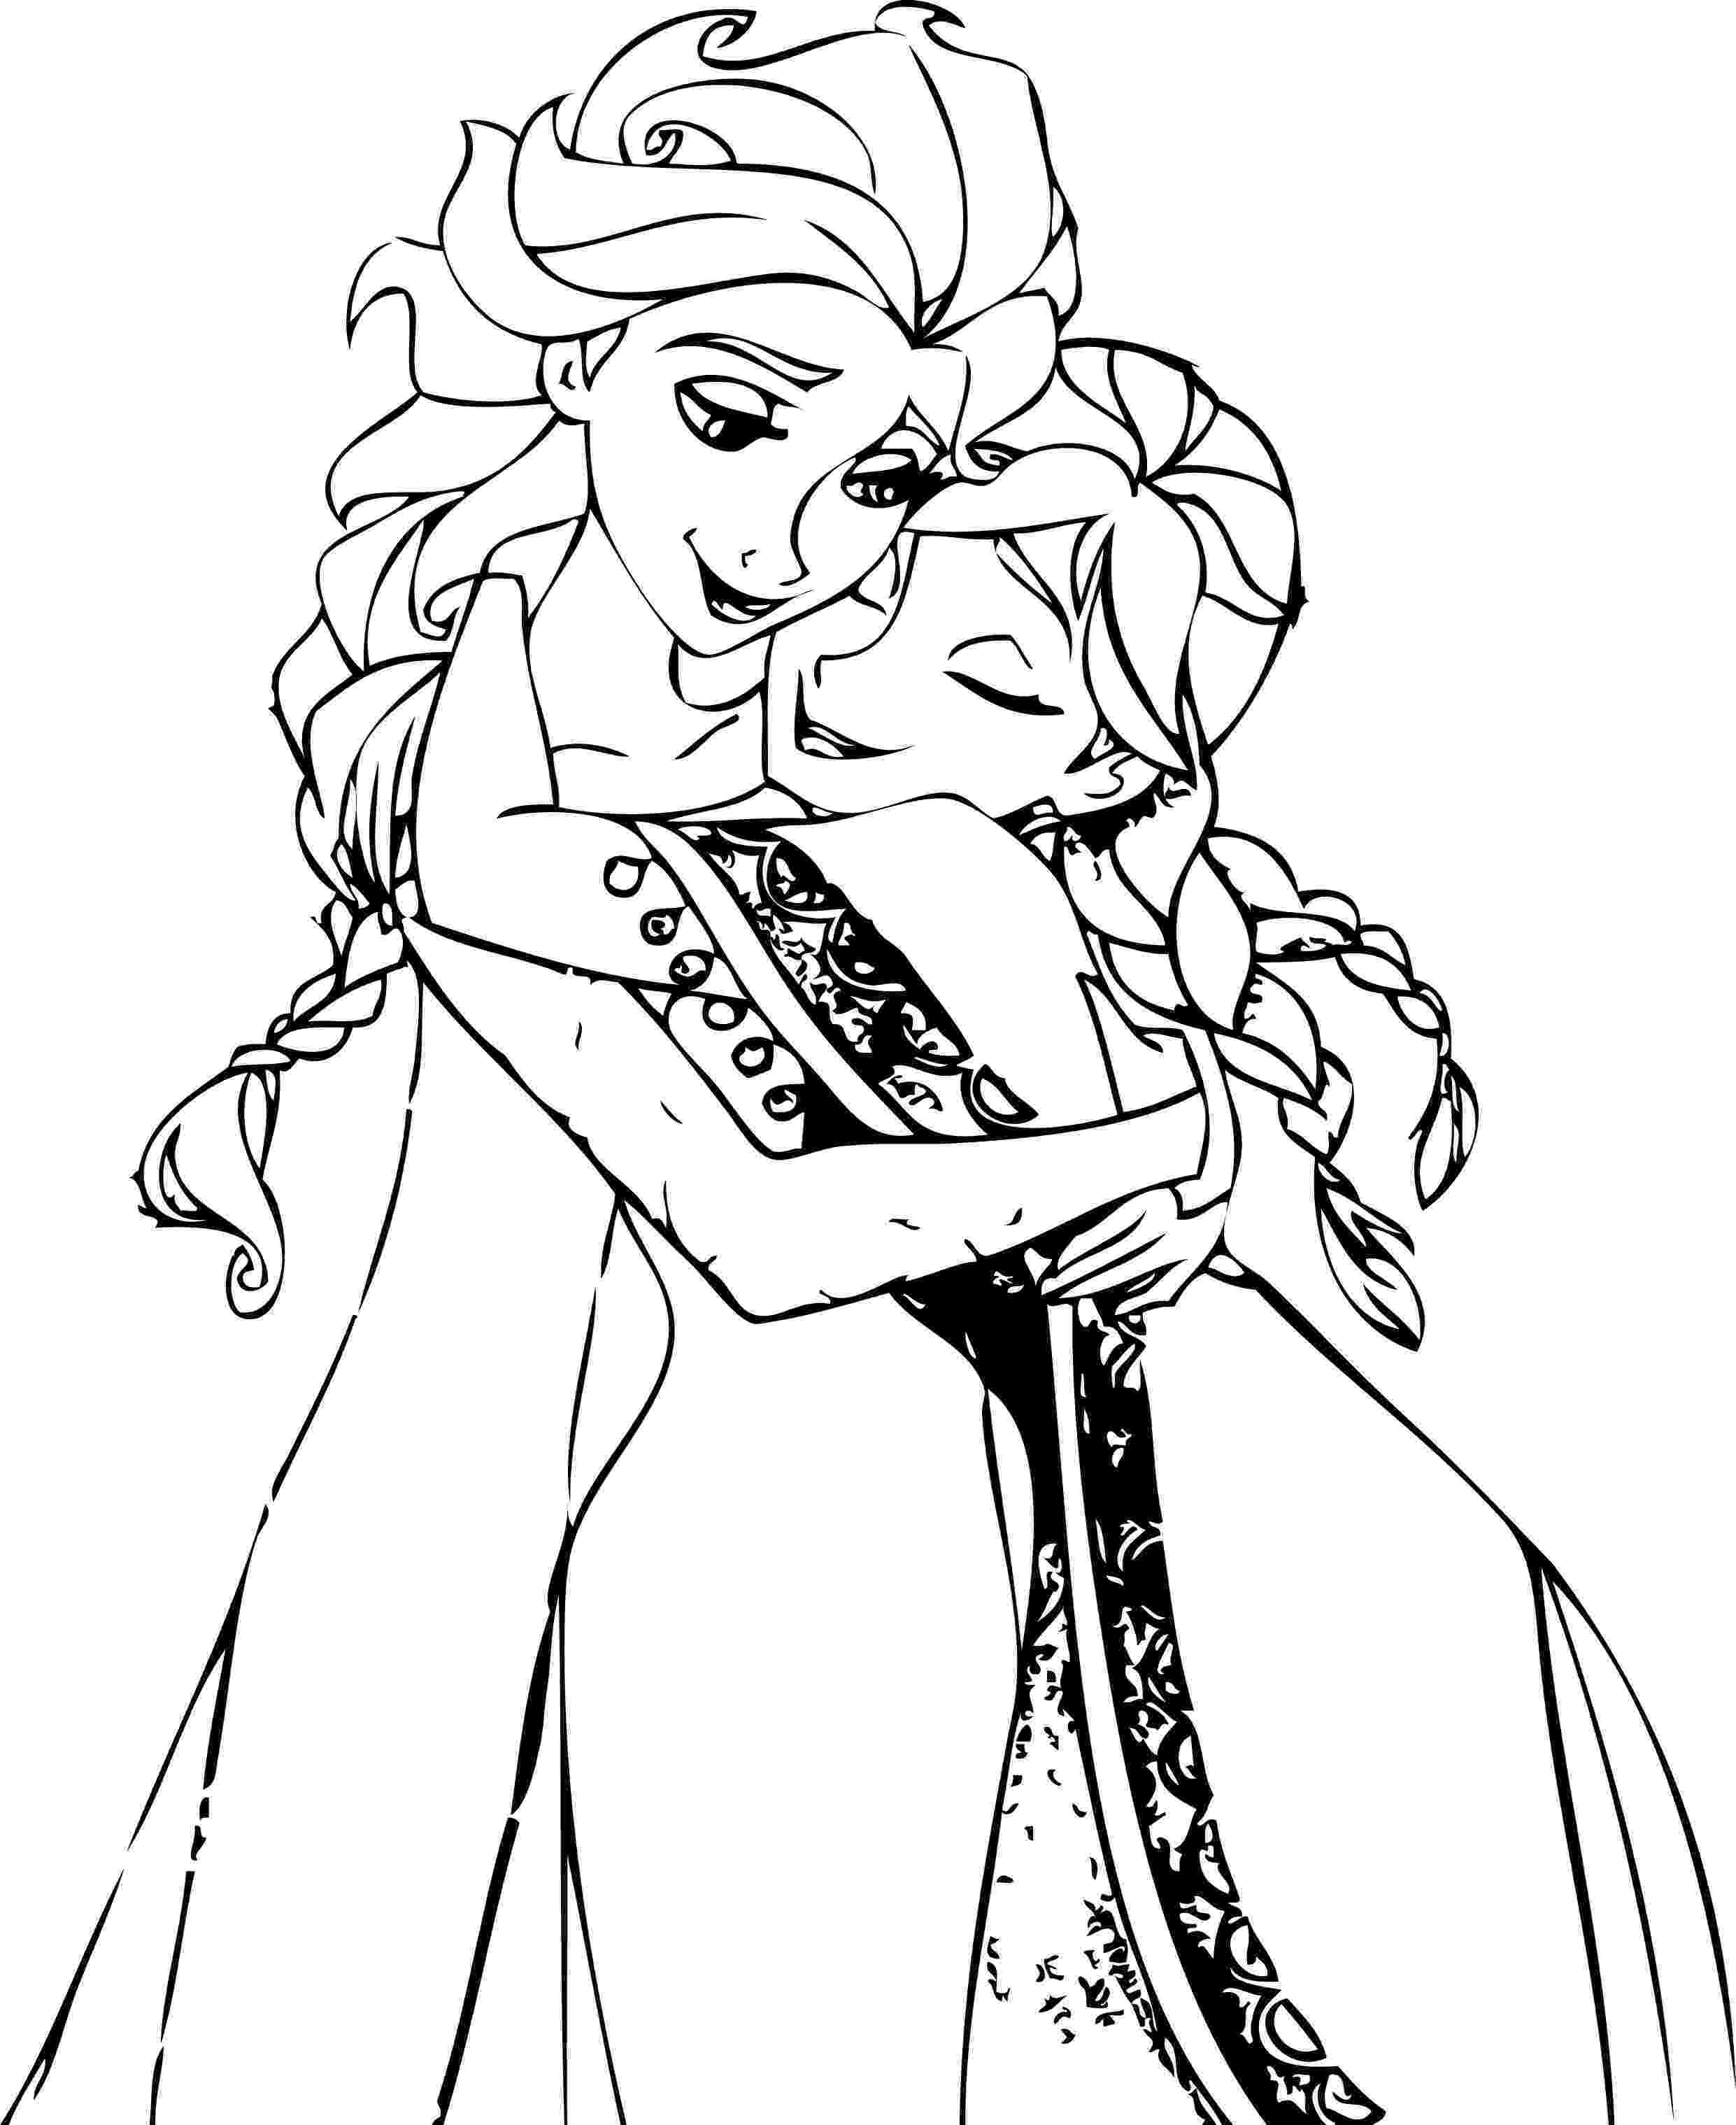 elsa and anna printables elsa and anna coloring pages the sun flower pages printables anna elsa and